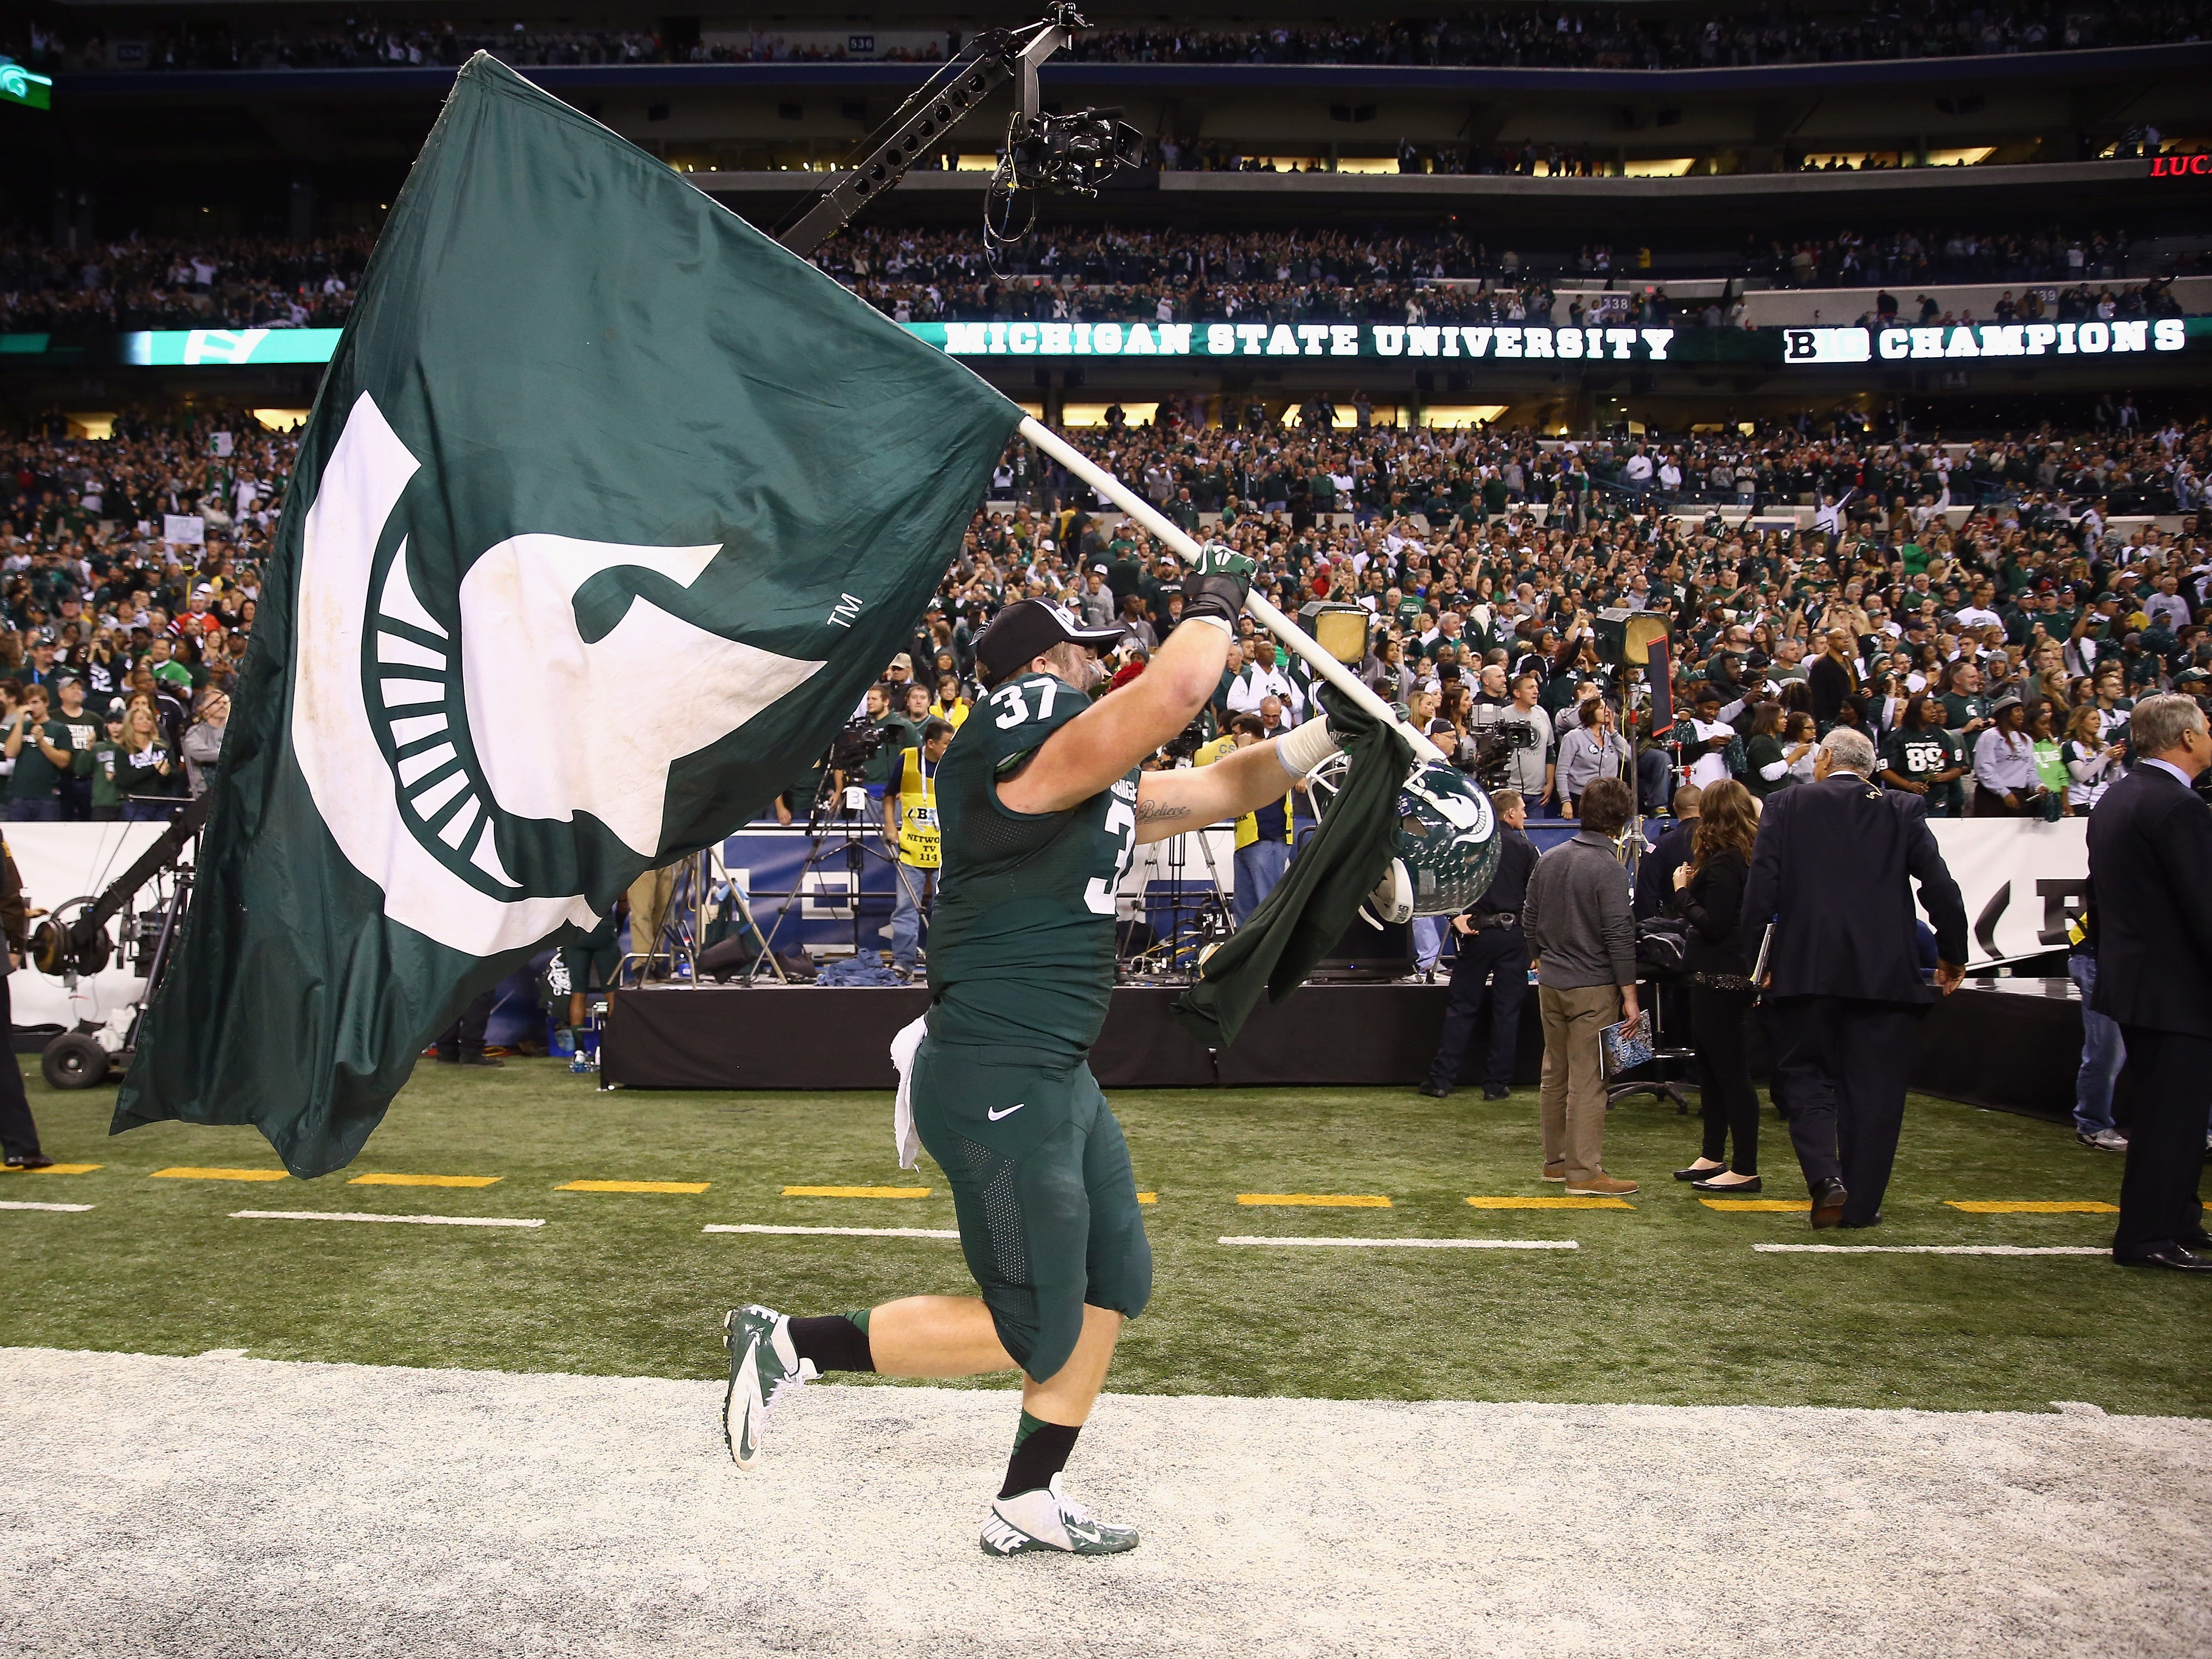 Dec. 7, 2013: No. 10 Michigan State 34, No. 2 Ohio State 24 (Big Ten championship game): Trevon Pendleton celebrates with the flag.